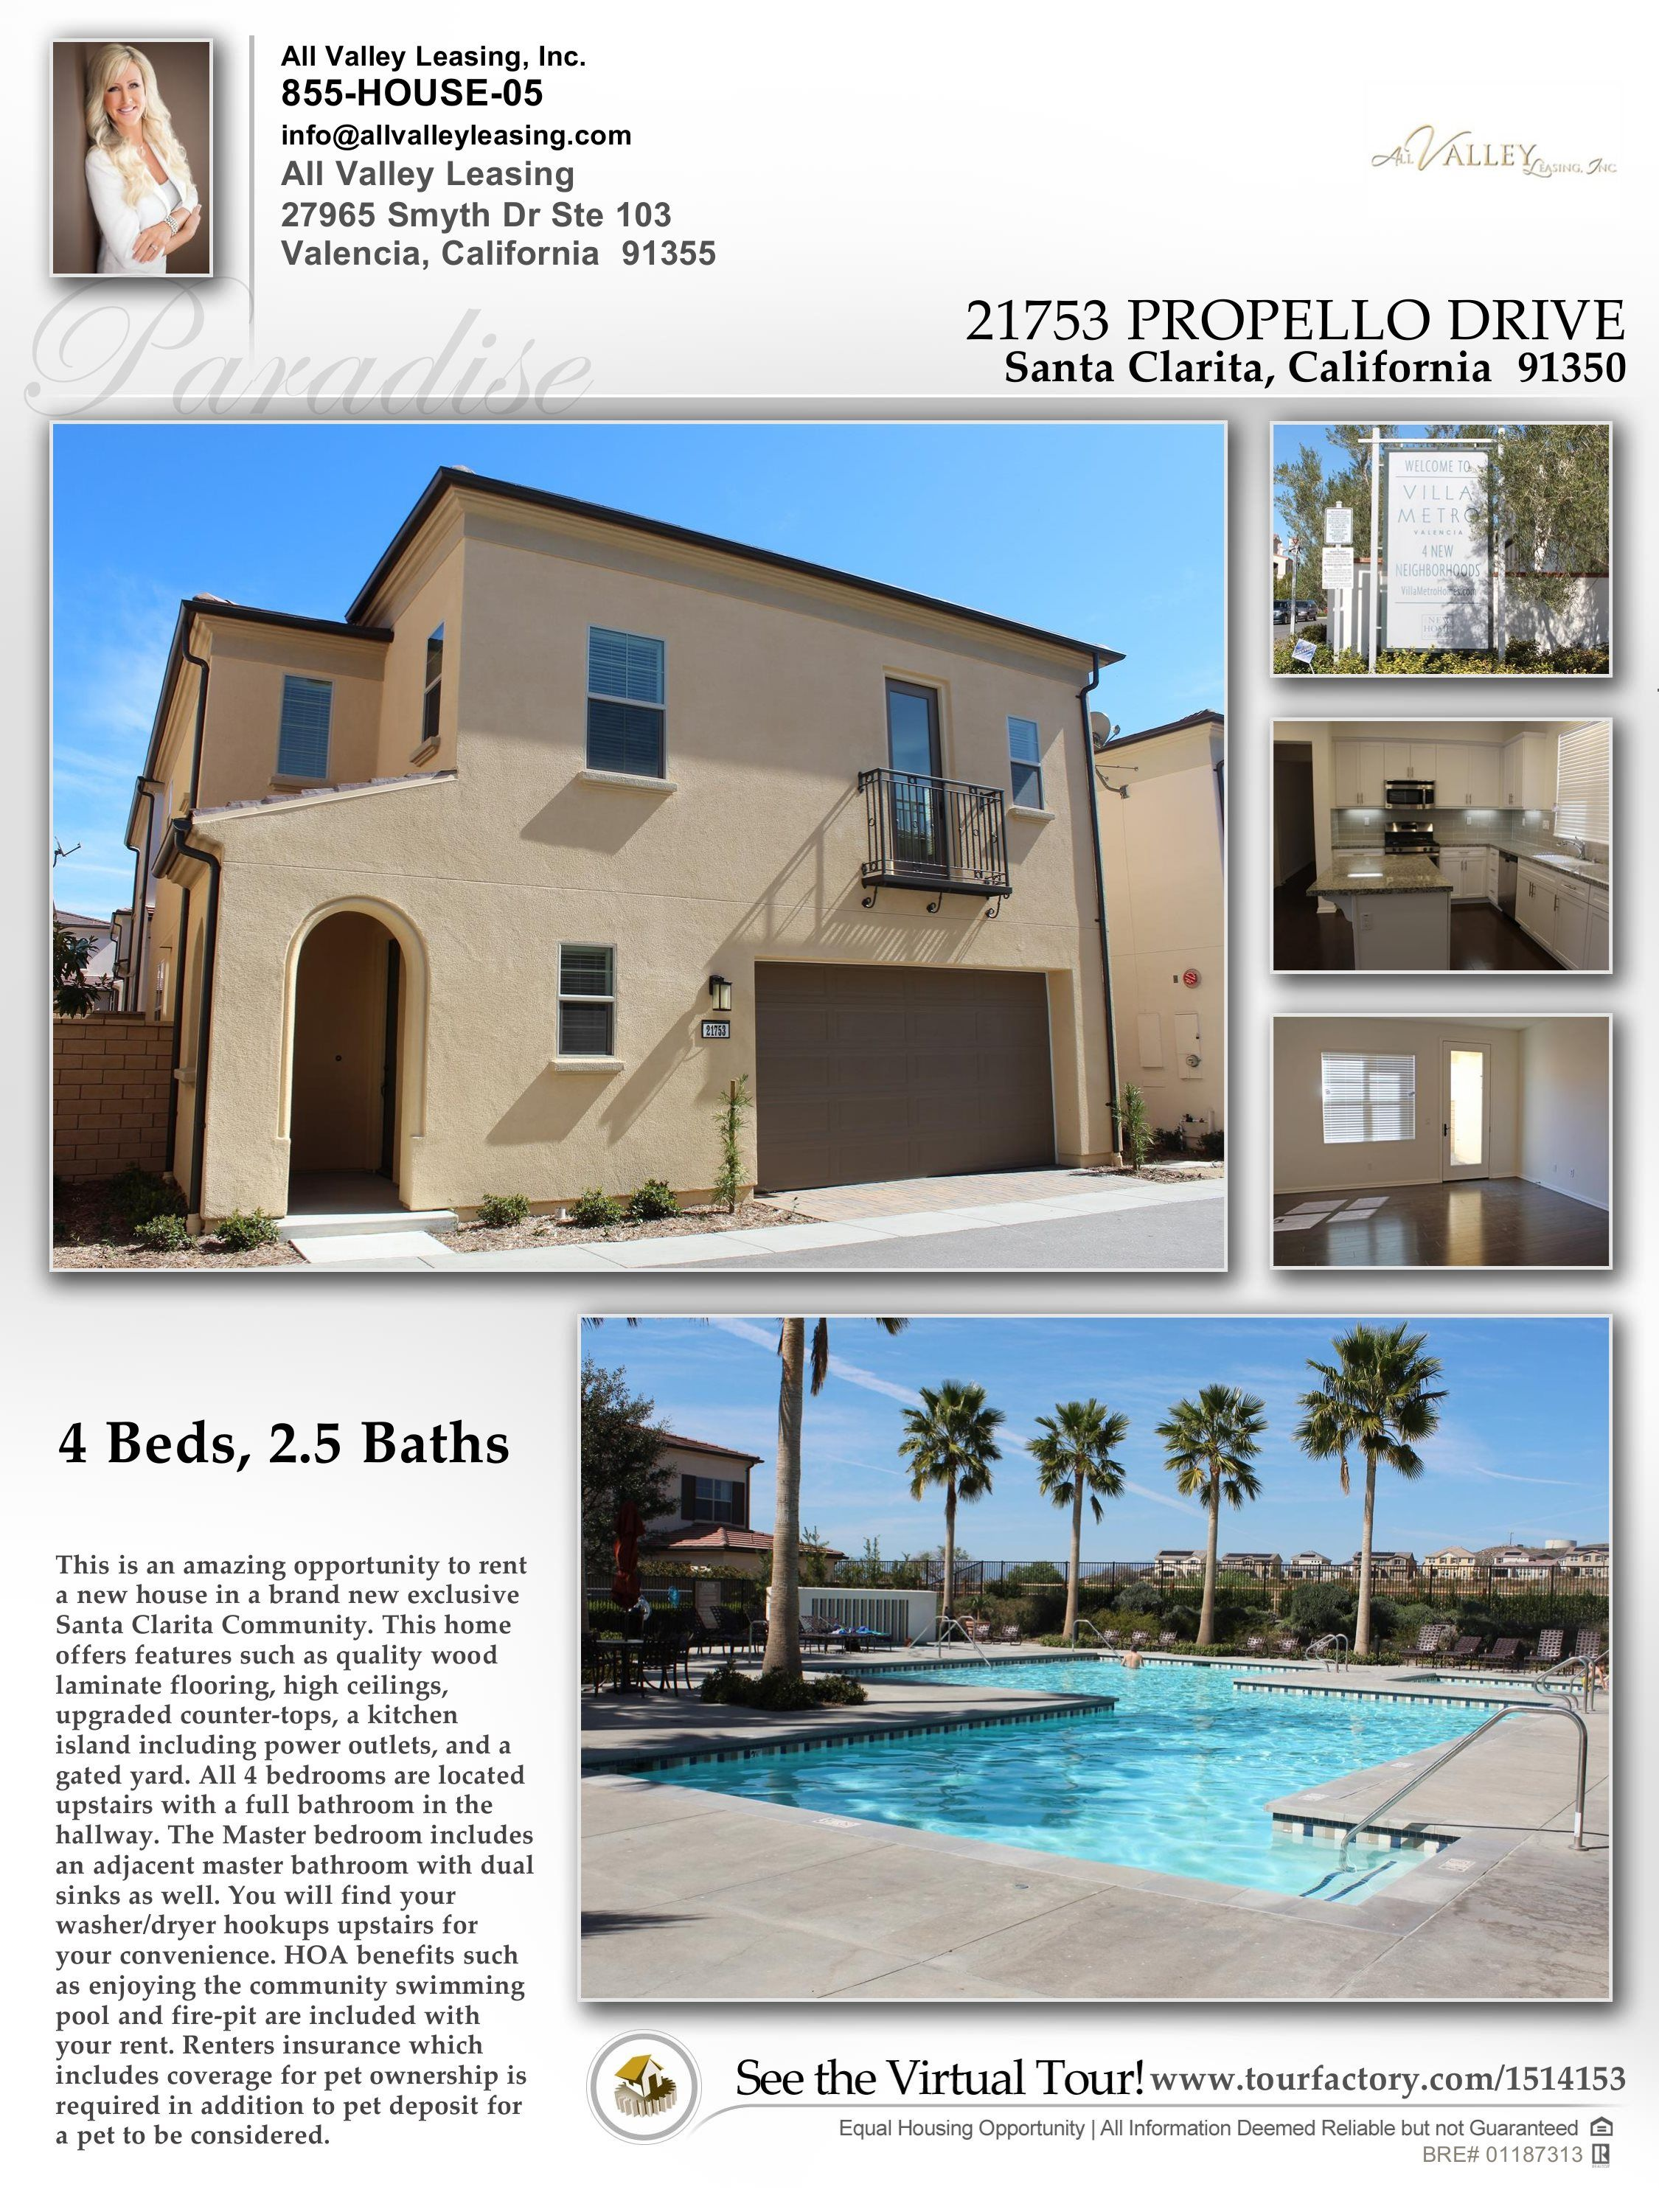 Hereus our newest listing in the brand new vista valencia community